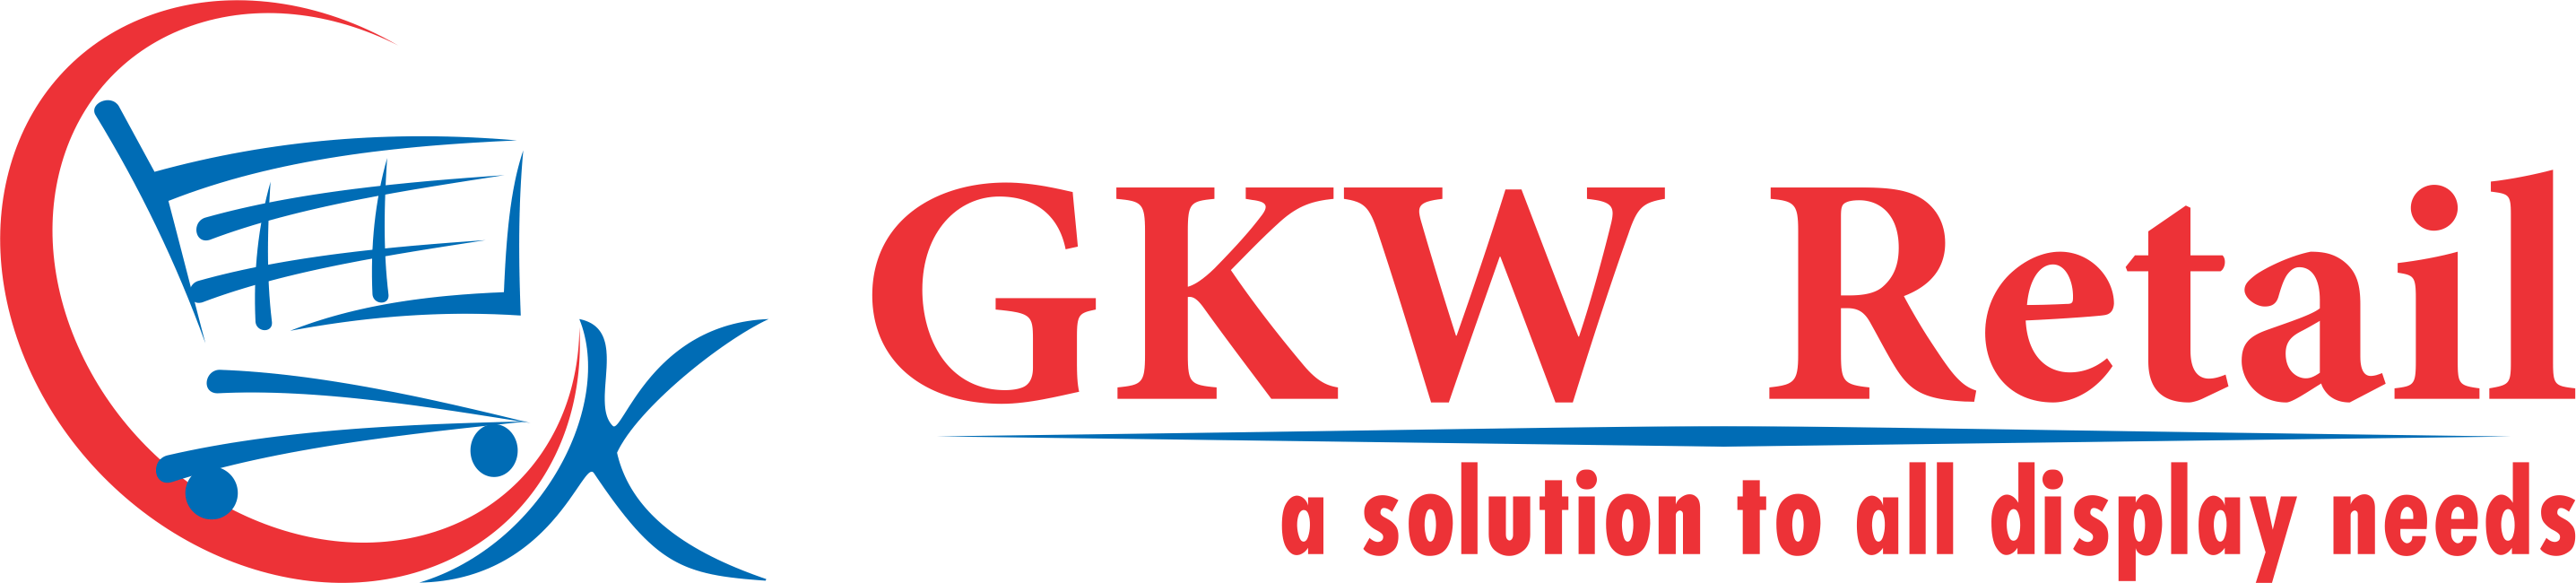 GKW Retail Solutions Pvt Ltd